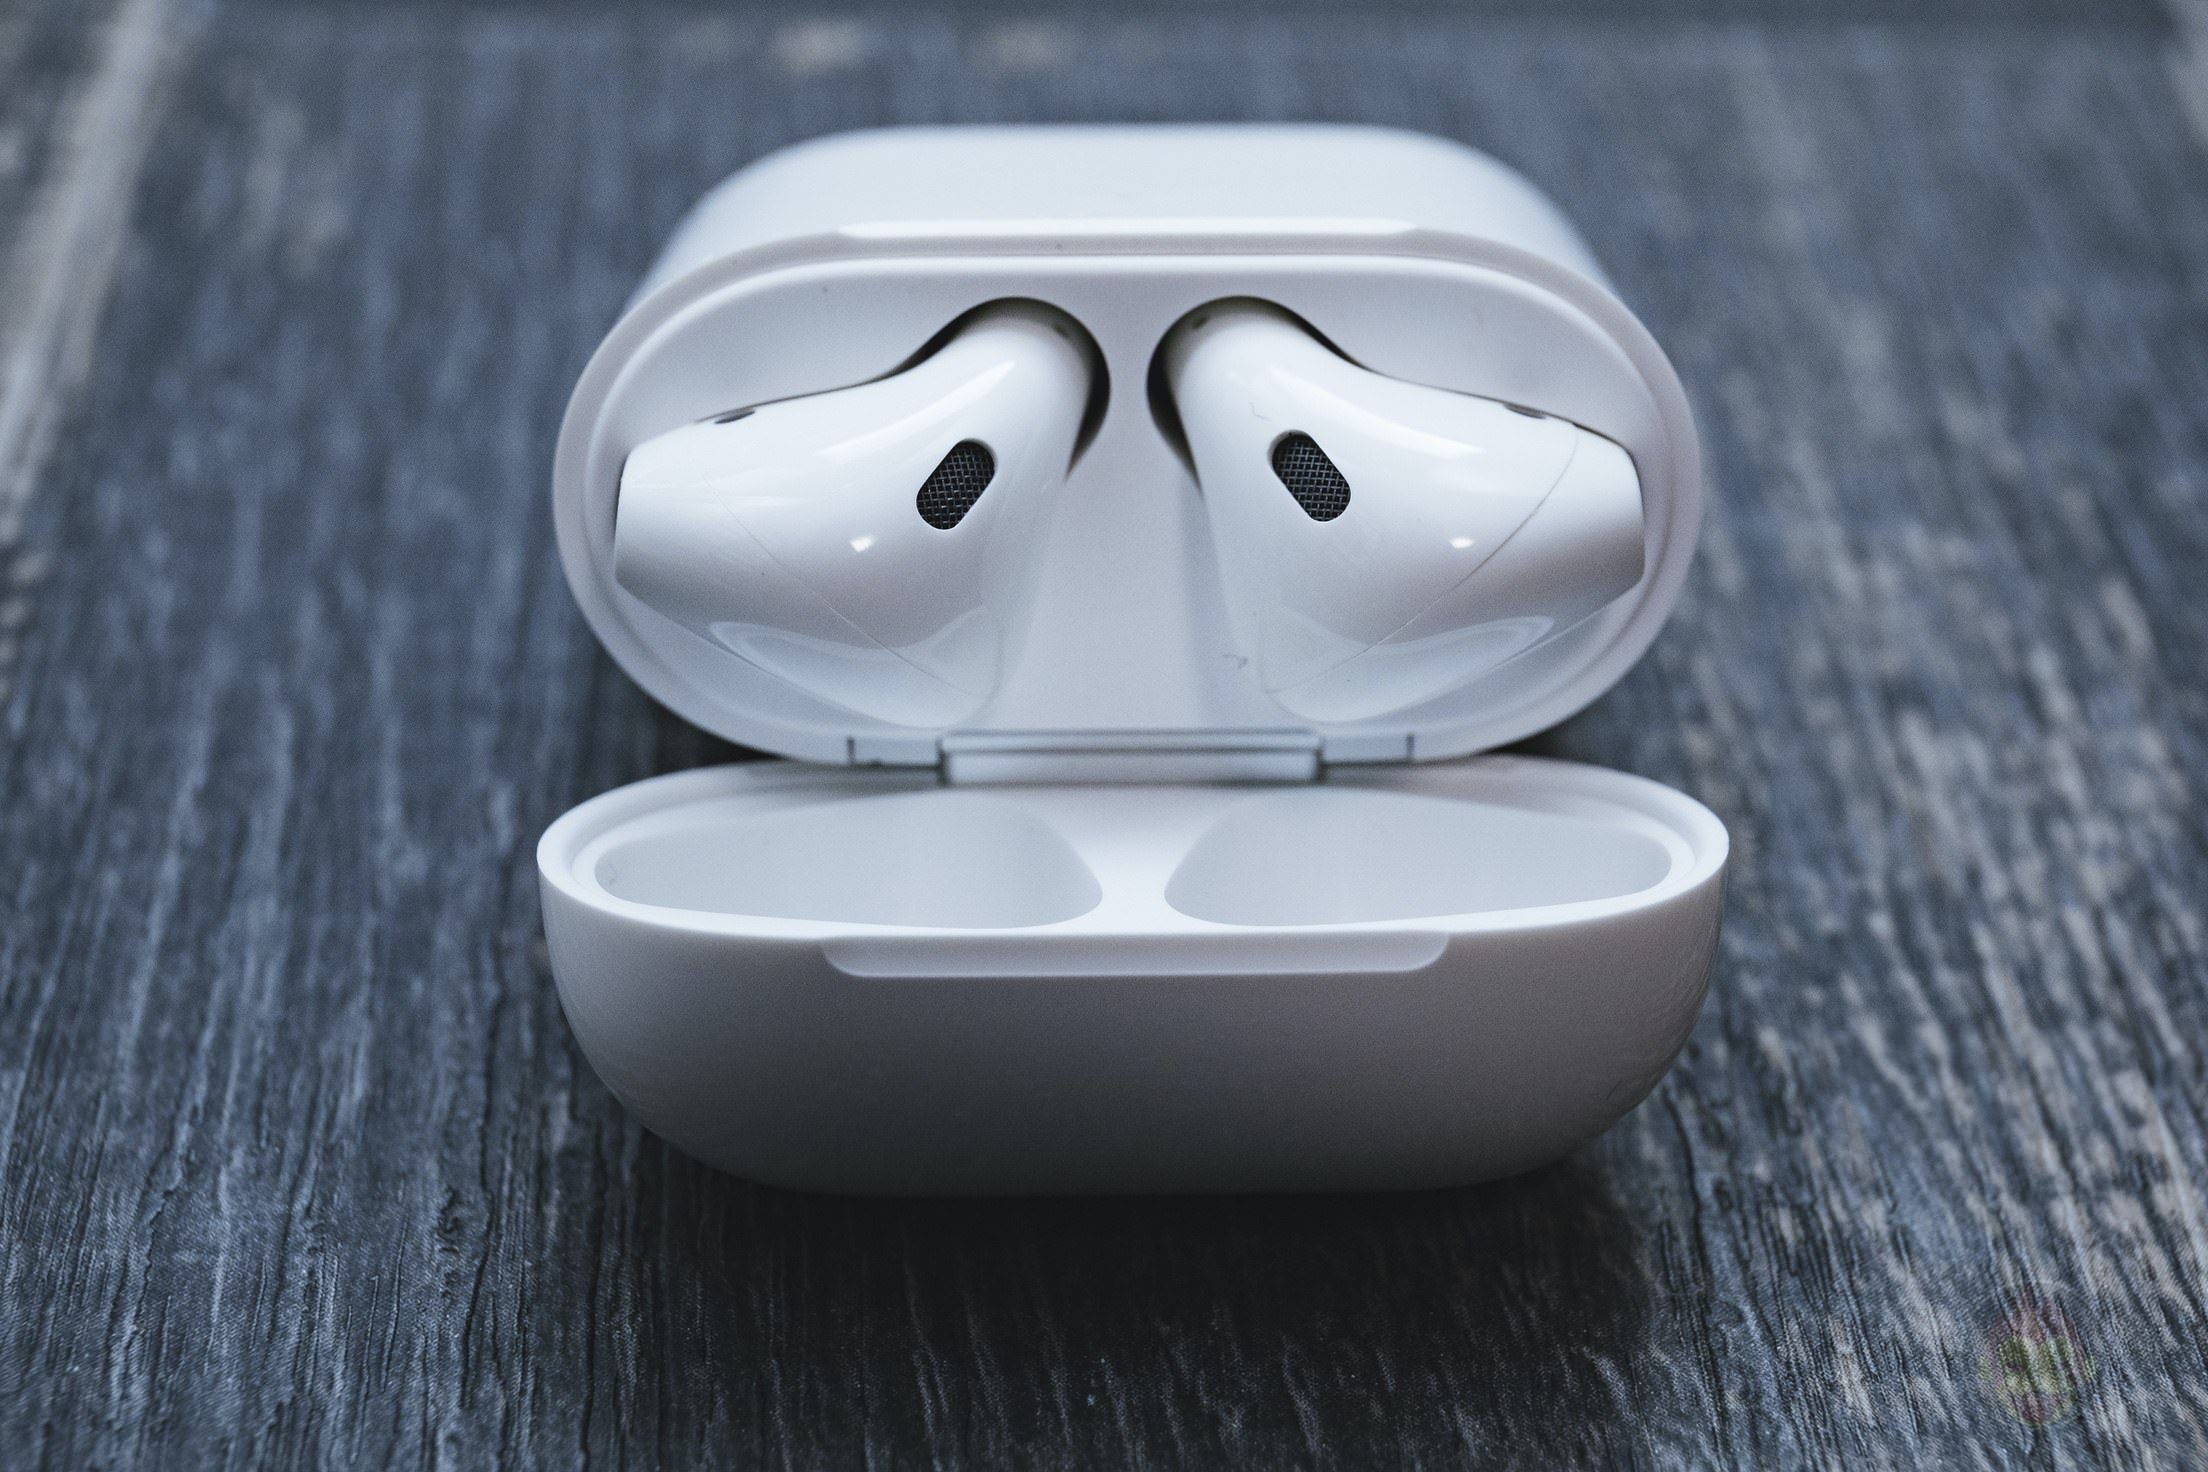 AirPods-2nd-Generation-2019-Review-12.jpg